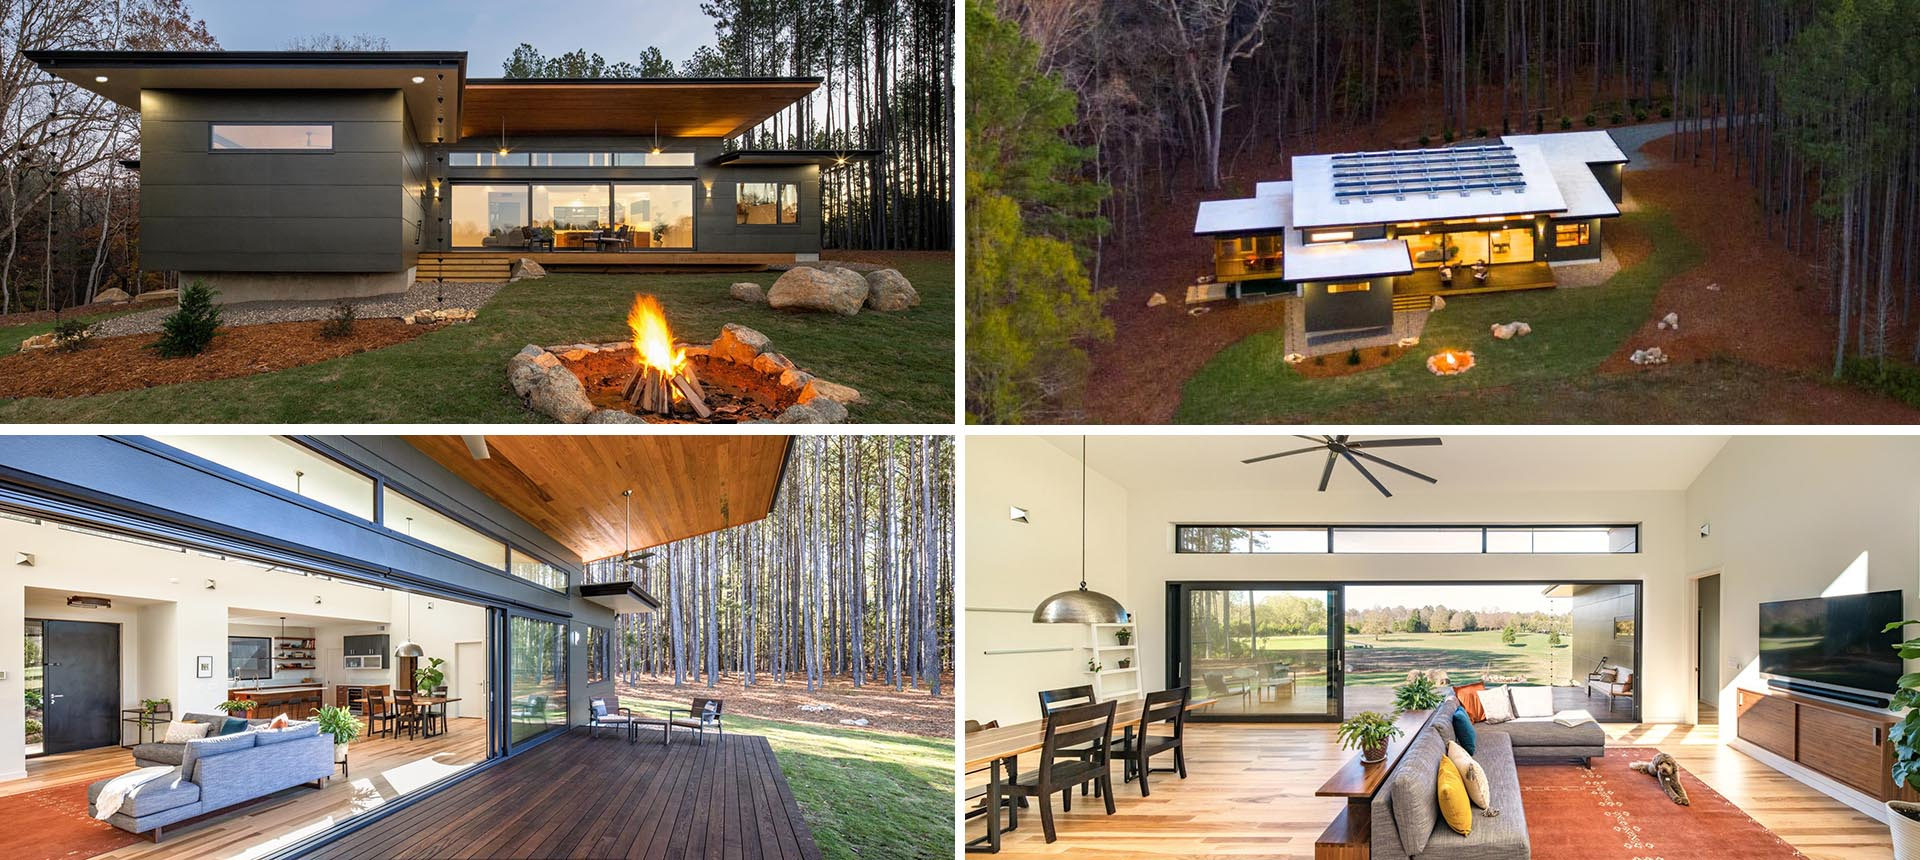 A modern home with solar panels, a covered deck, a fire pit, and an open floor plan.